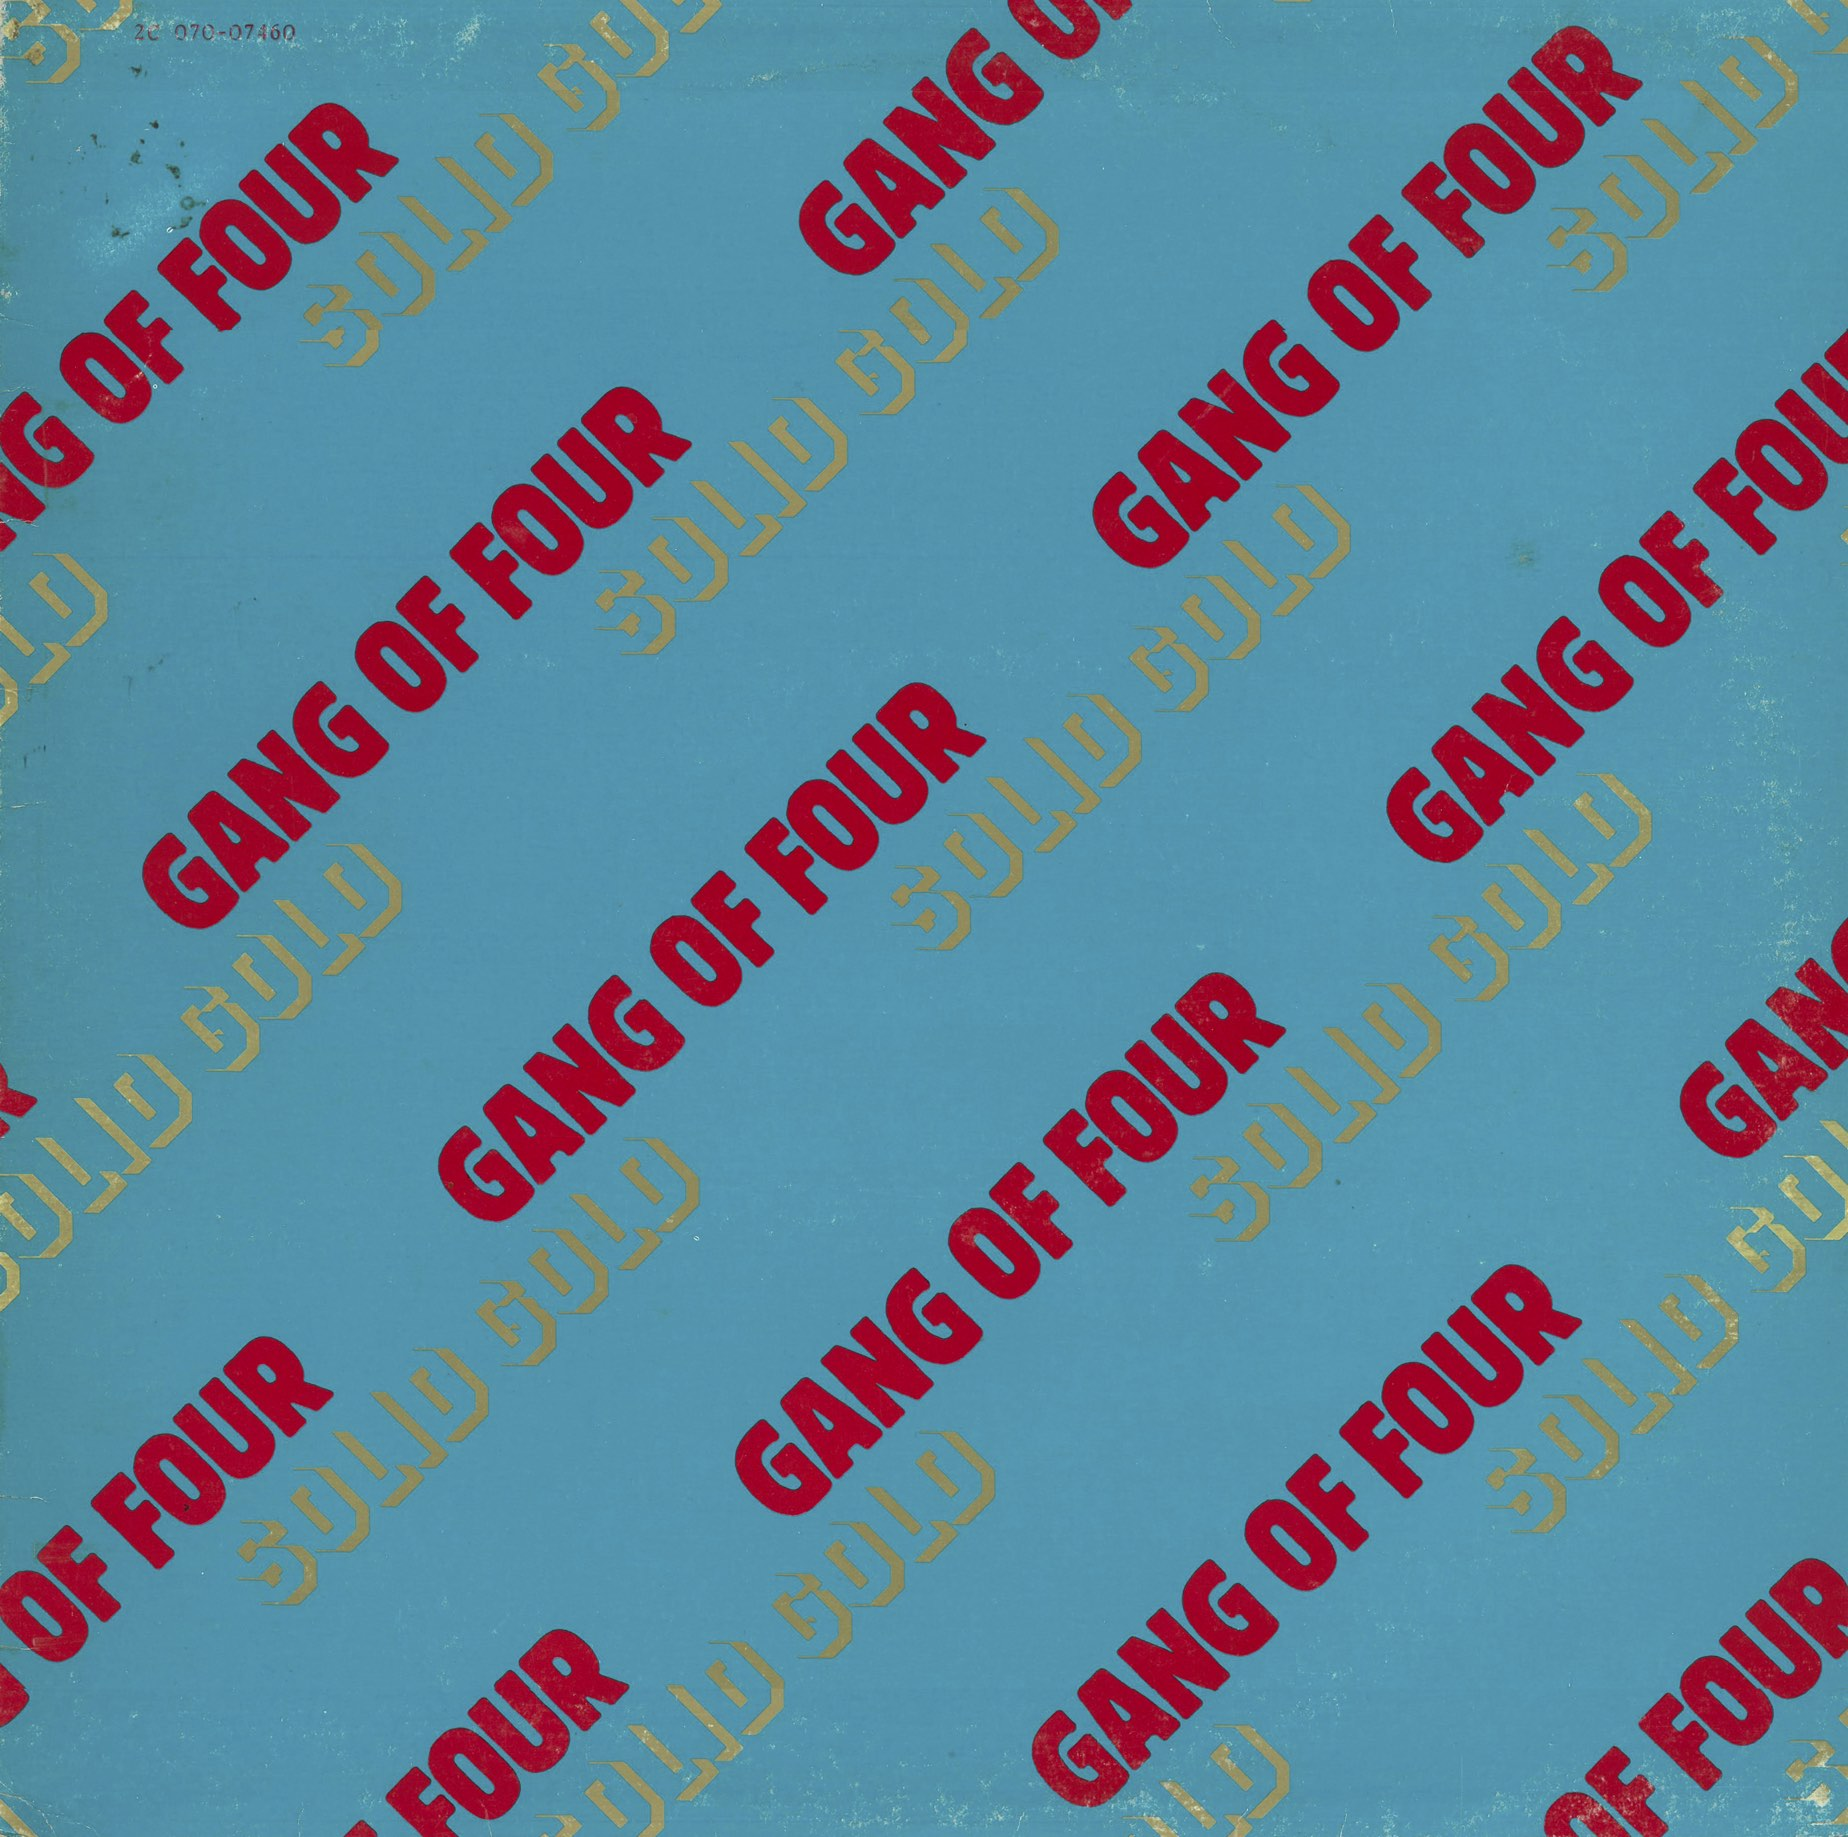 2004 - Gang Of Four